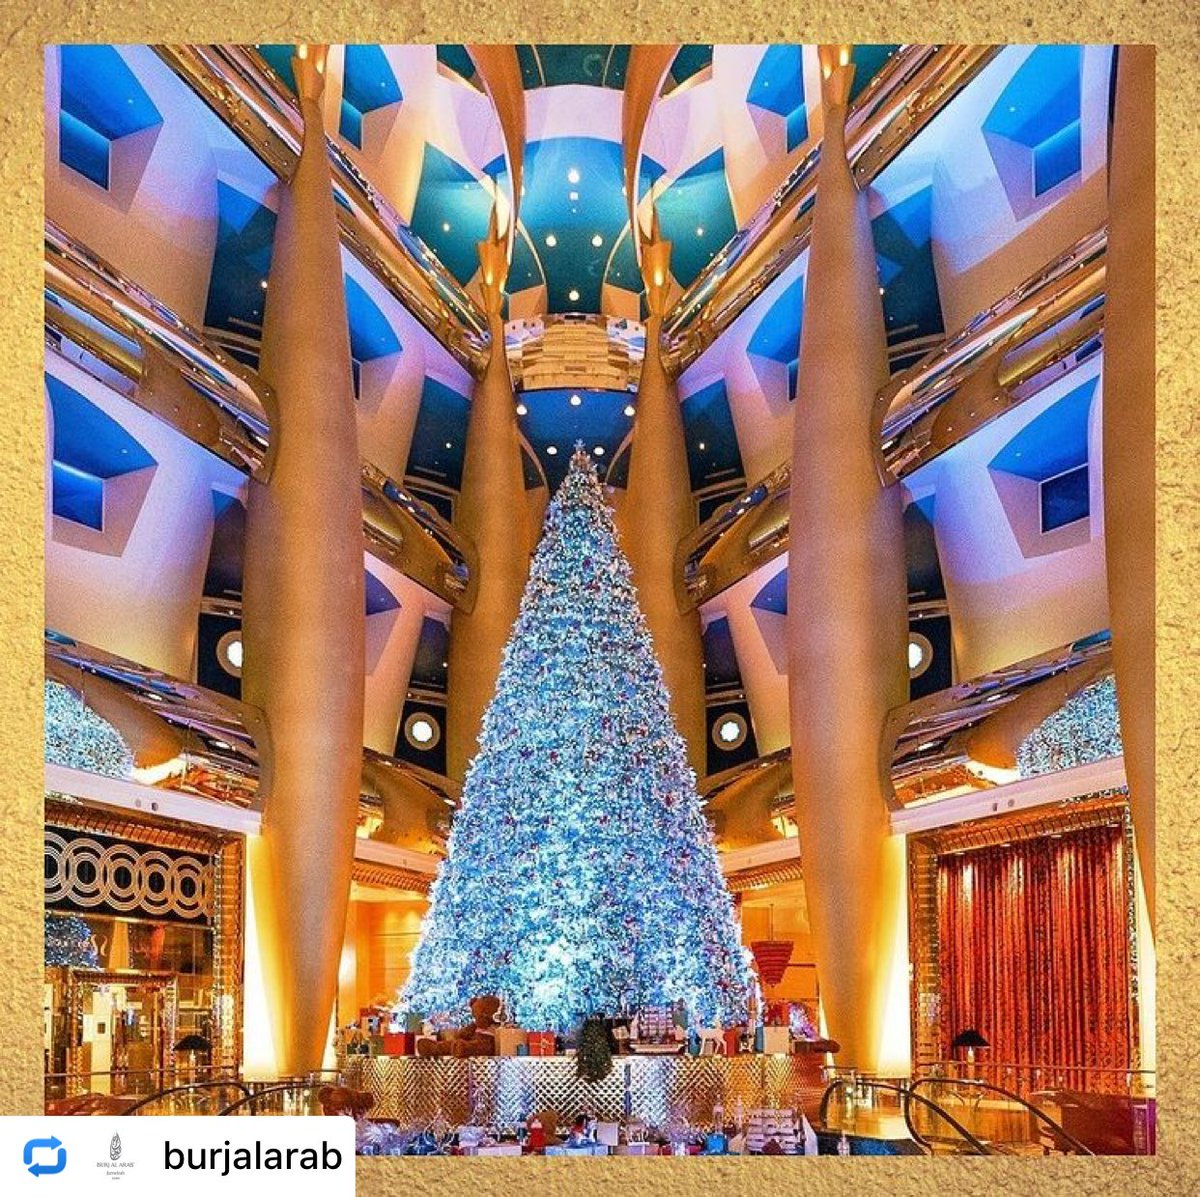 #Repost from @burjalarab by @storytv_app No matter where we find ourselves during this special time of year,  From our family to yours, we wish you a joyous holiday season filled with love, warmth and unending hope.  #HappyHolidays #YourFestiveMoment #BurjAlArab